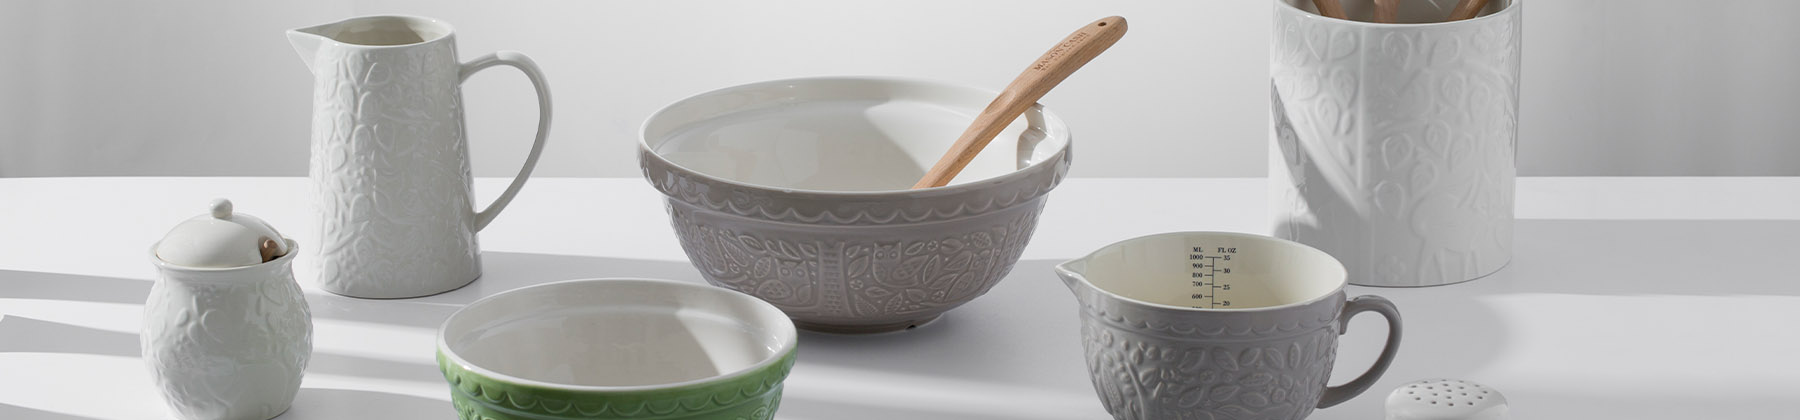 Photo of Mason Cash bakeware In the Forest collection.